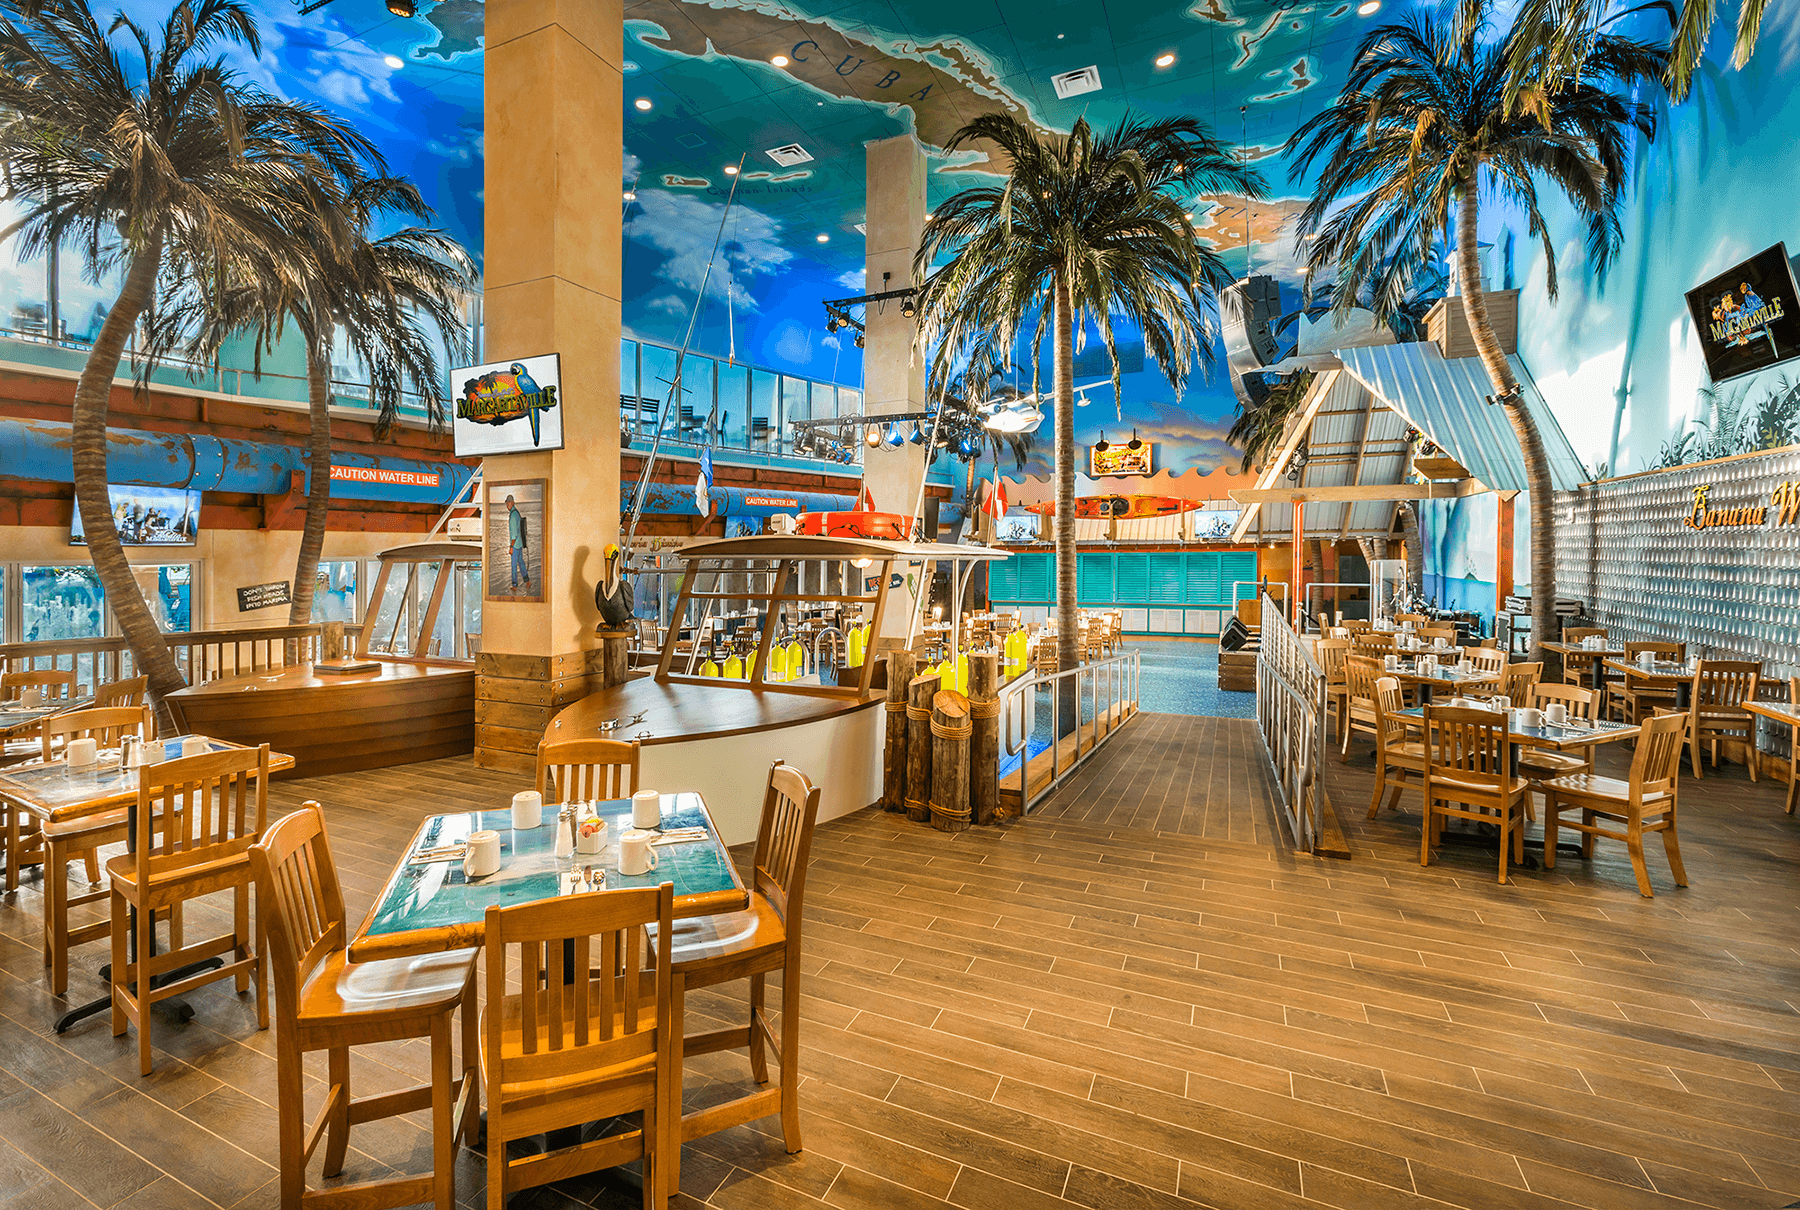 Hollywood Beach Florida Restaurants On Boardwalk